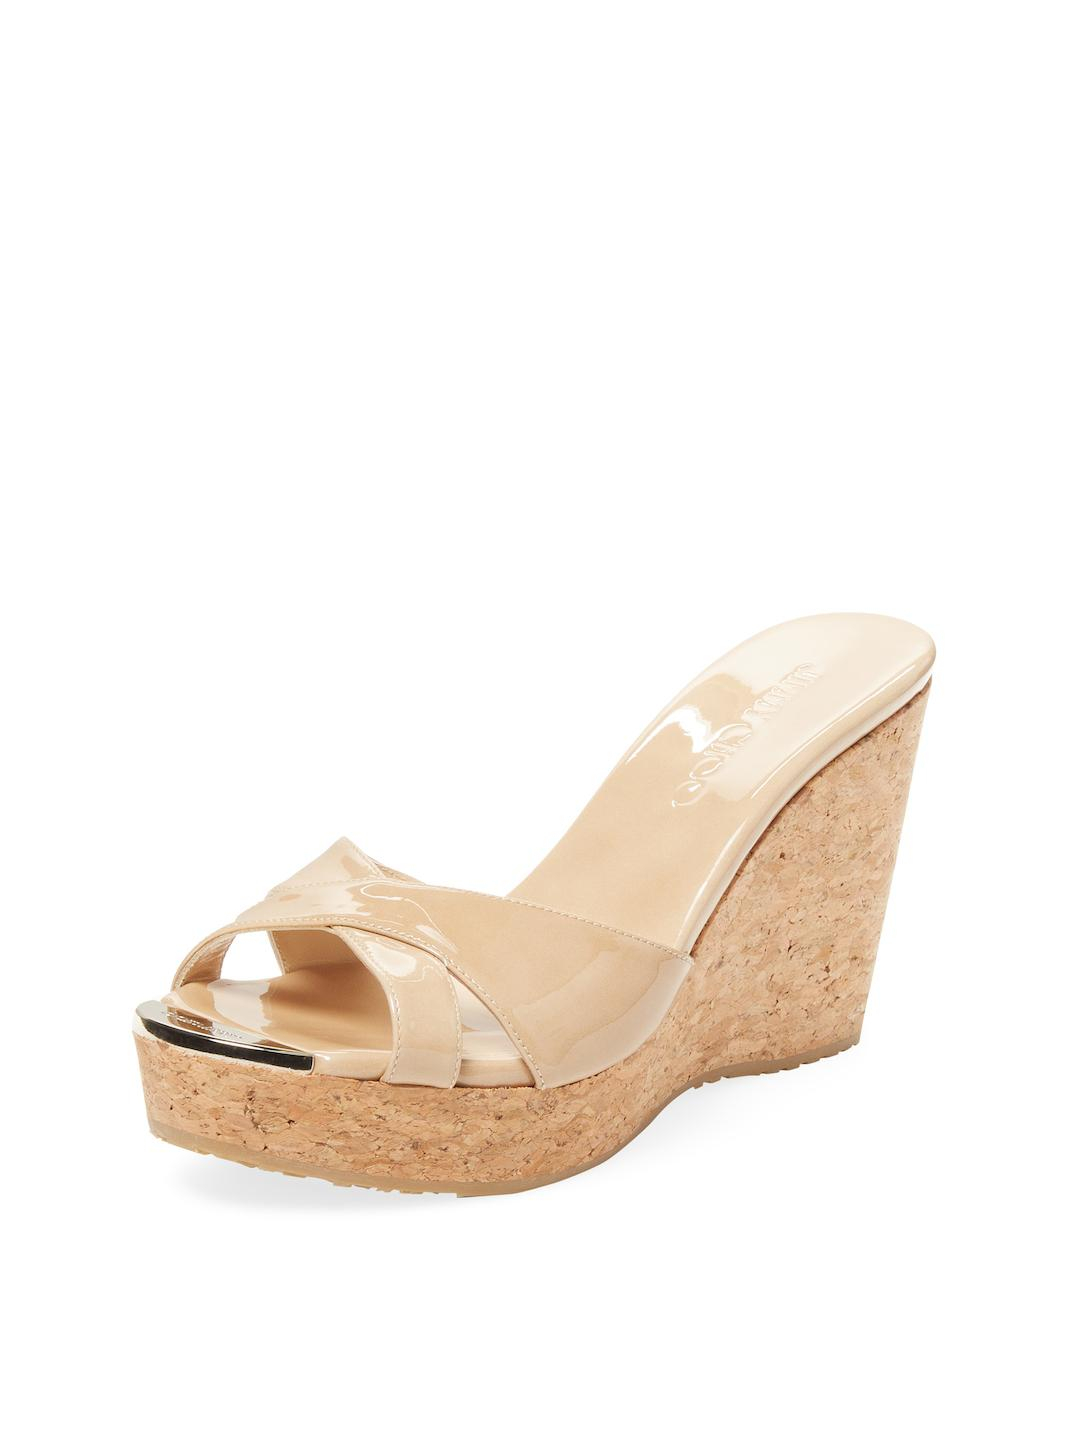 e081b65511f3 Lyst - Jimmy Choo Pandora Patent Leather Wedge in Natural